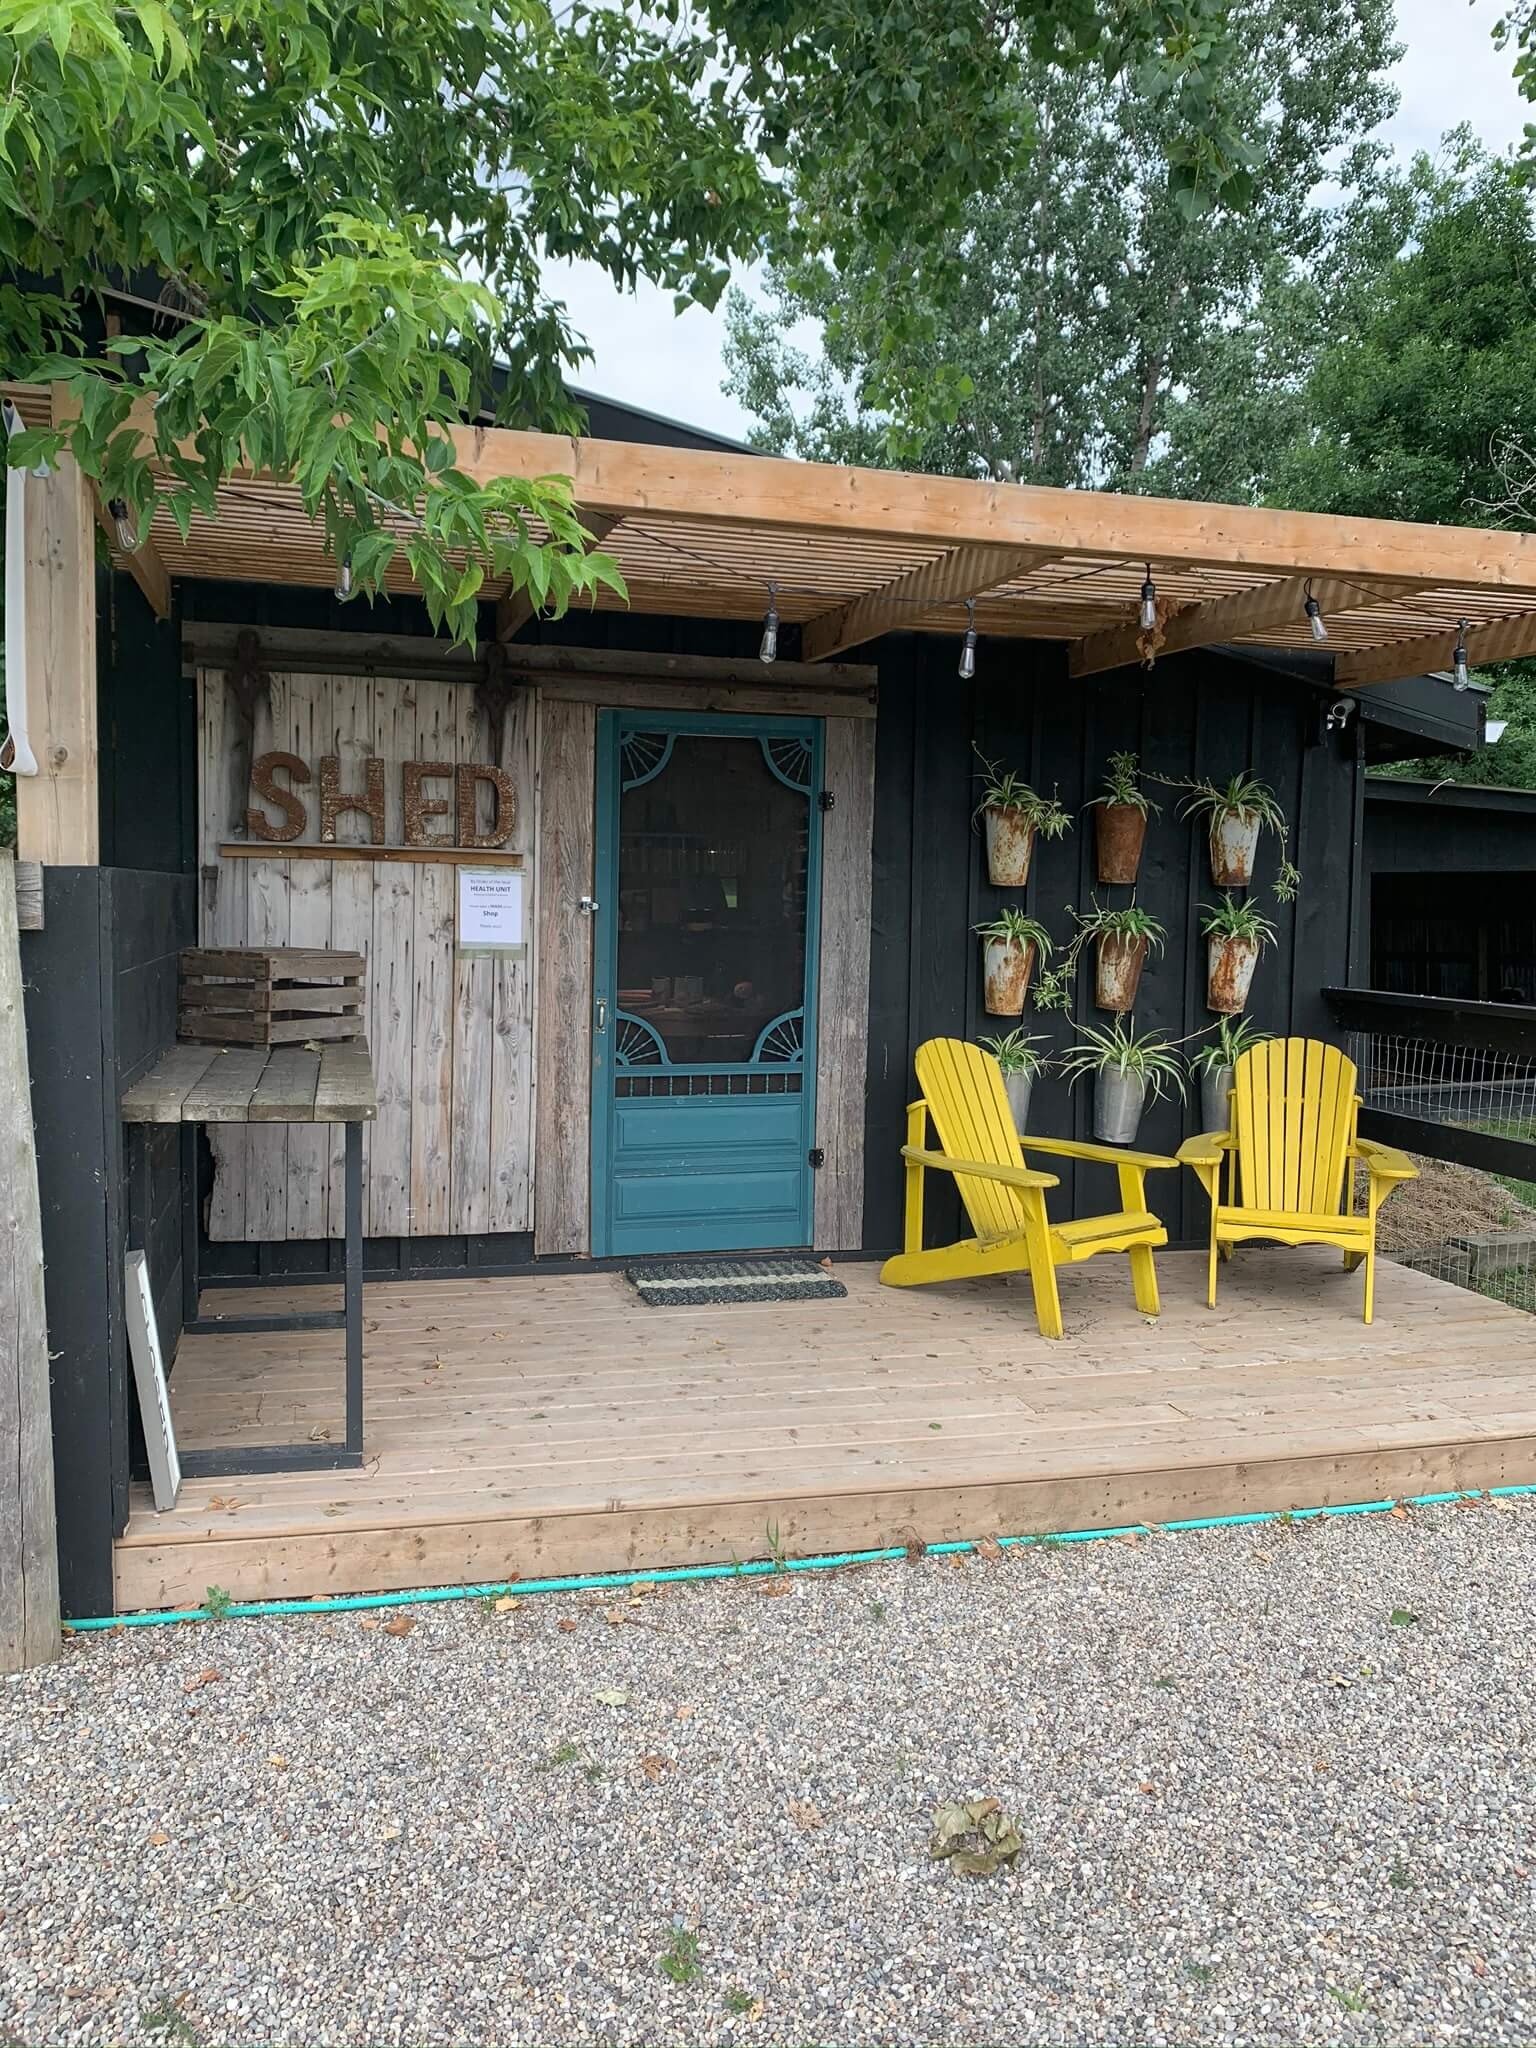 The Studio-Shop at Shed Chetwyn Farms